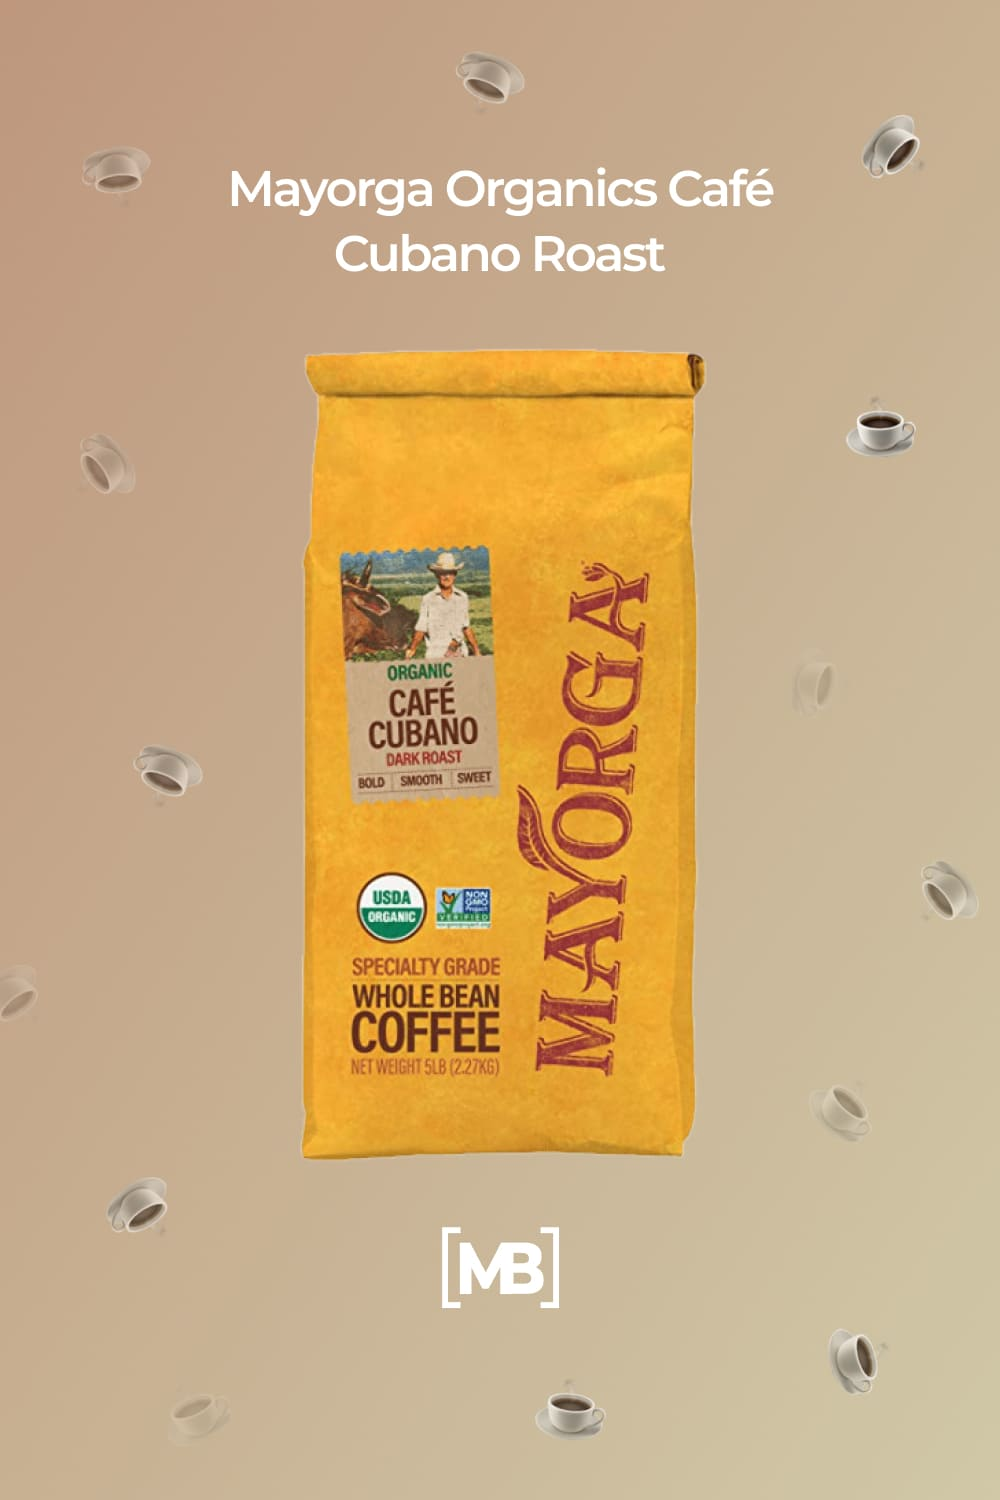 This is a cuban-style dark roast profile Mayorga has perfected, with hints of vanilla and sweet, syrupy smokiness, with a smooth, and bold finish with low acidity.